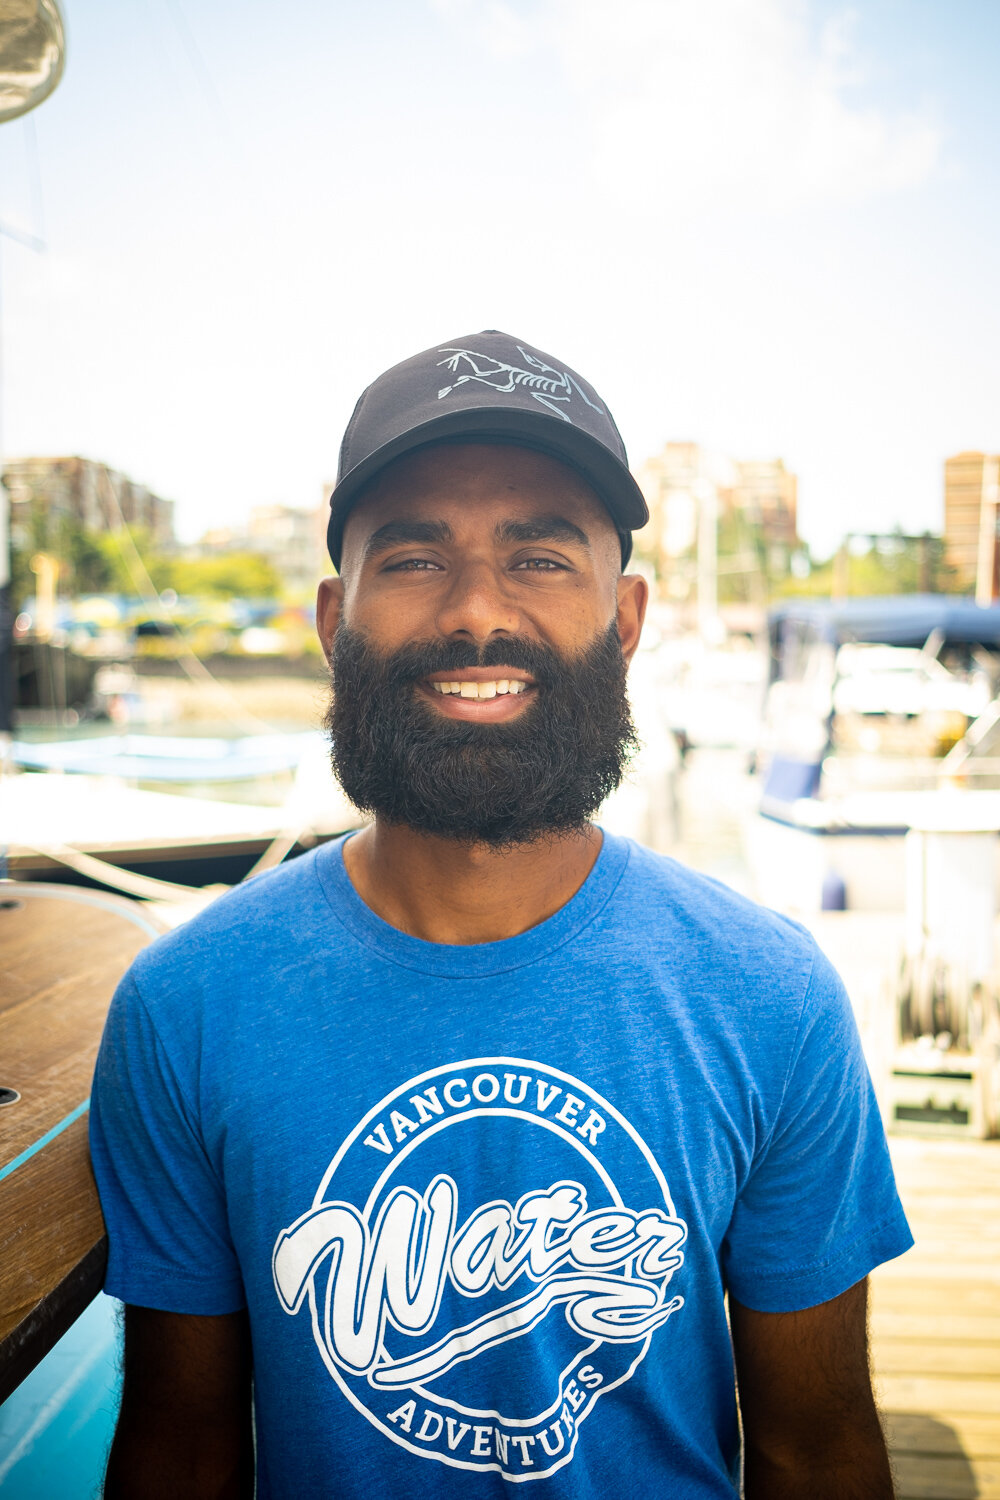 Headshots for Vancouver Water Adventures